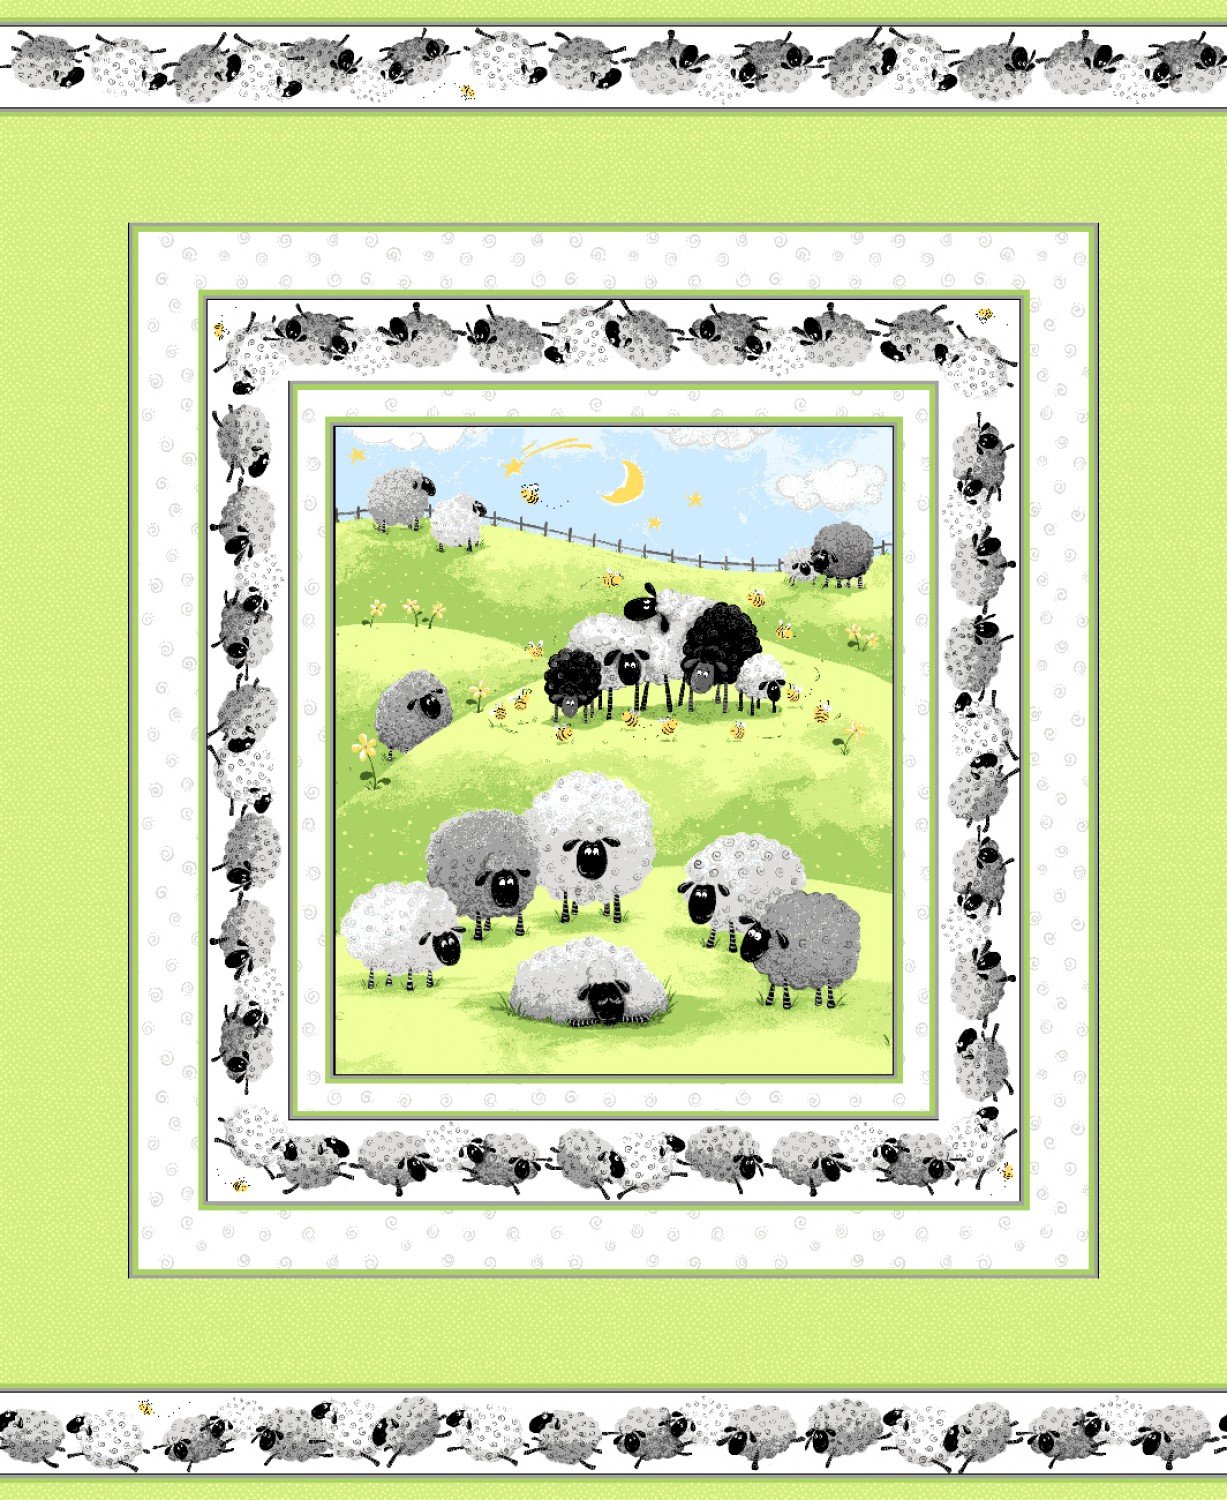 Lewe The Ewe Fabric Panel From Susybee Collection36 x 44 inches